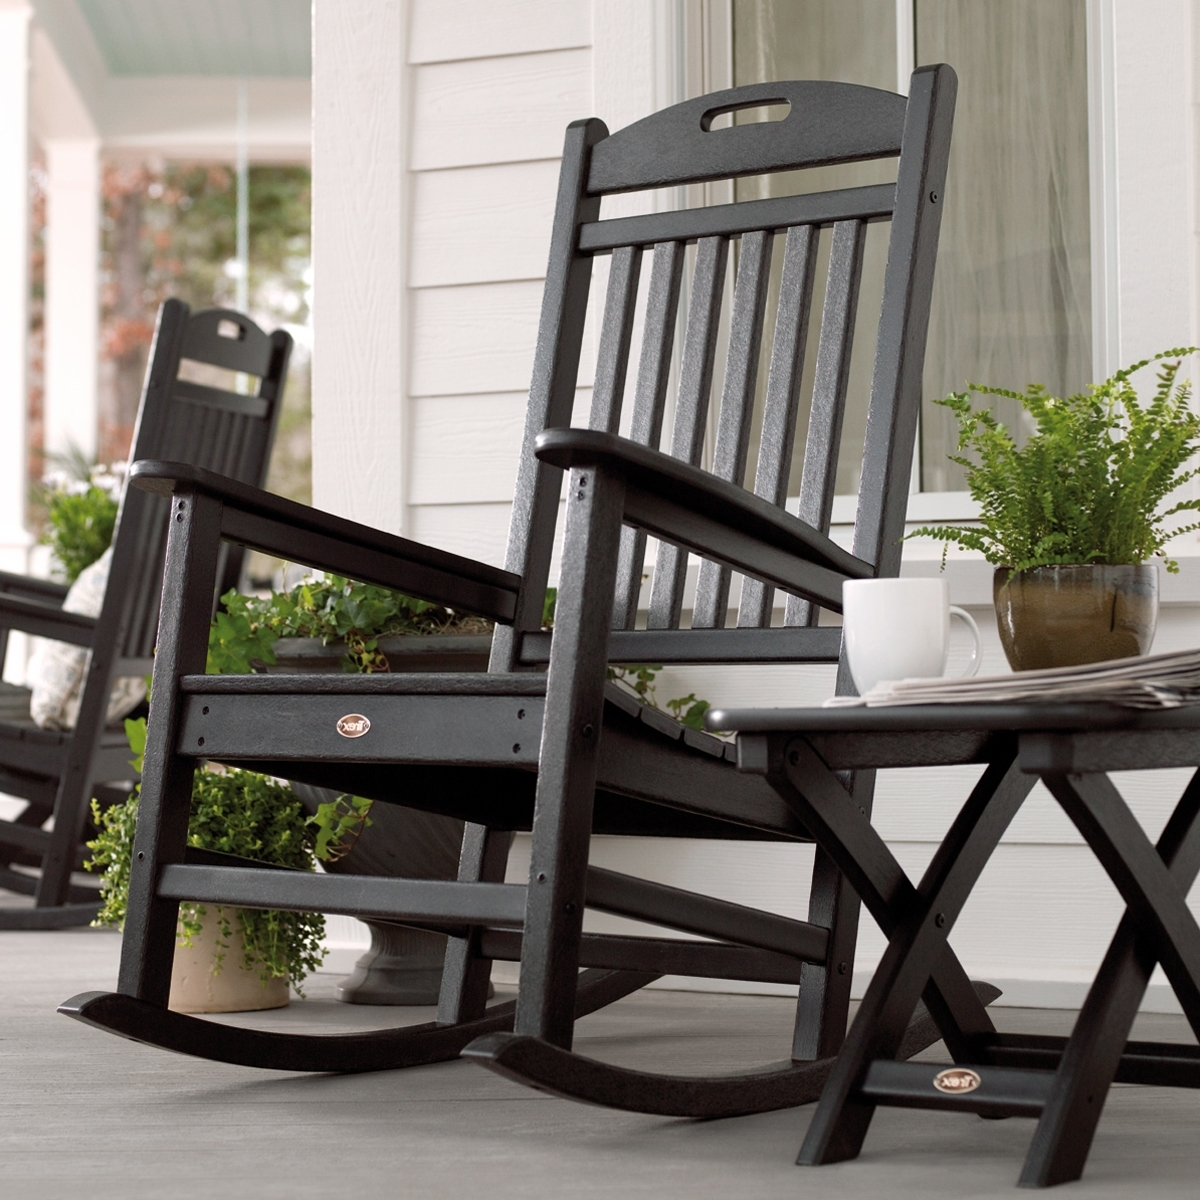 Trex Outdoor Furniture Txr100 Yacht Club Outdoor Rocking Chair With Regard To Most Current Unique Outdoor Rocking Chairs (View 14 of 20)